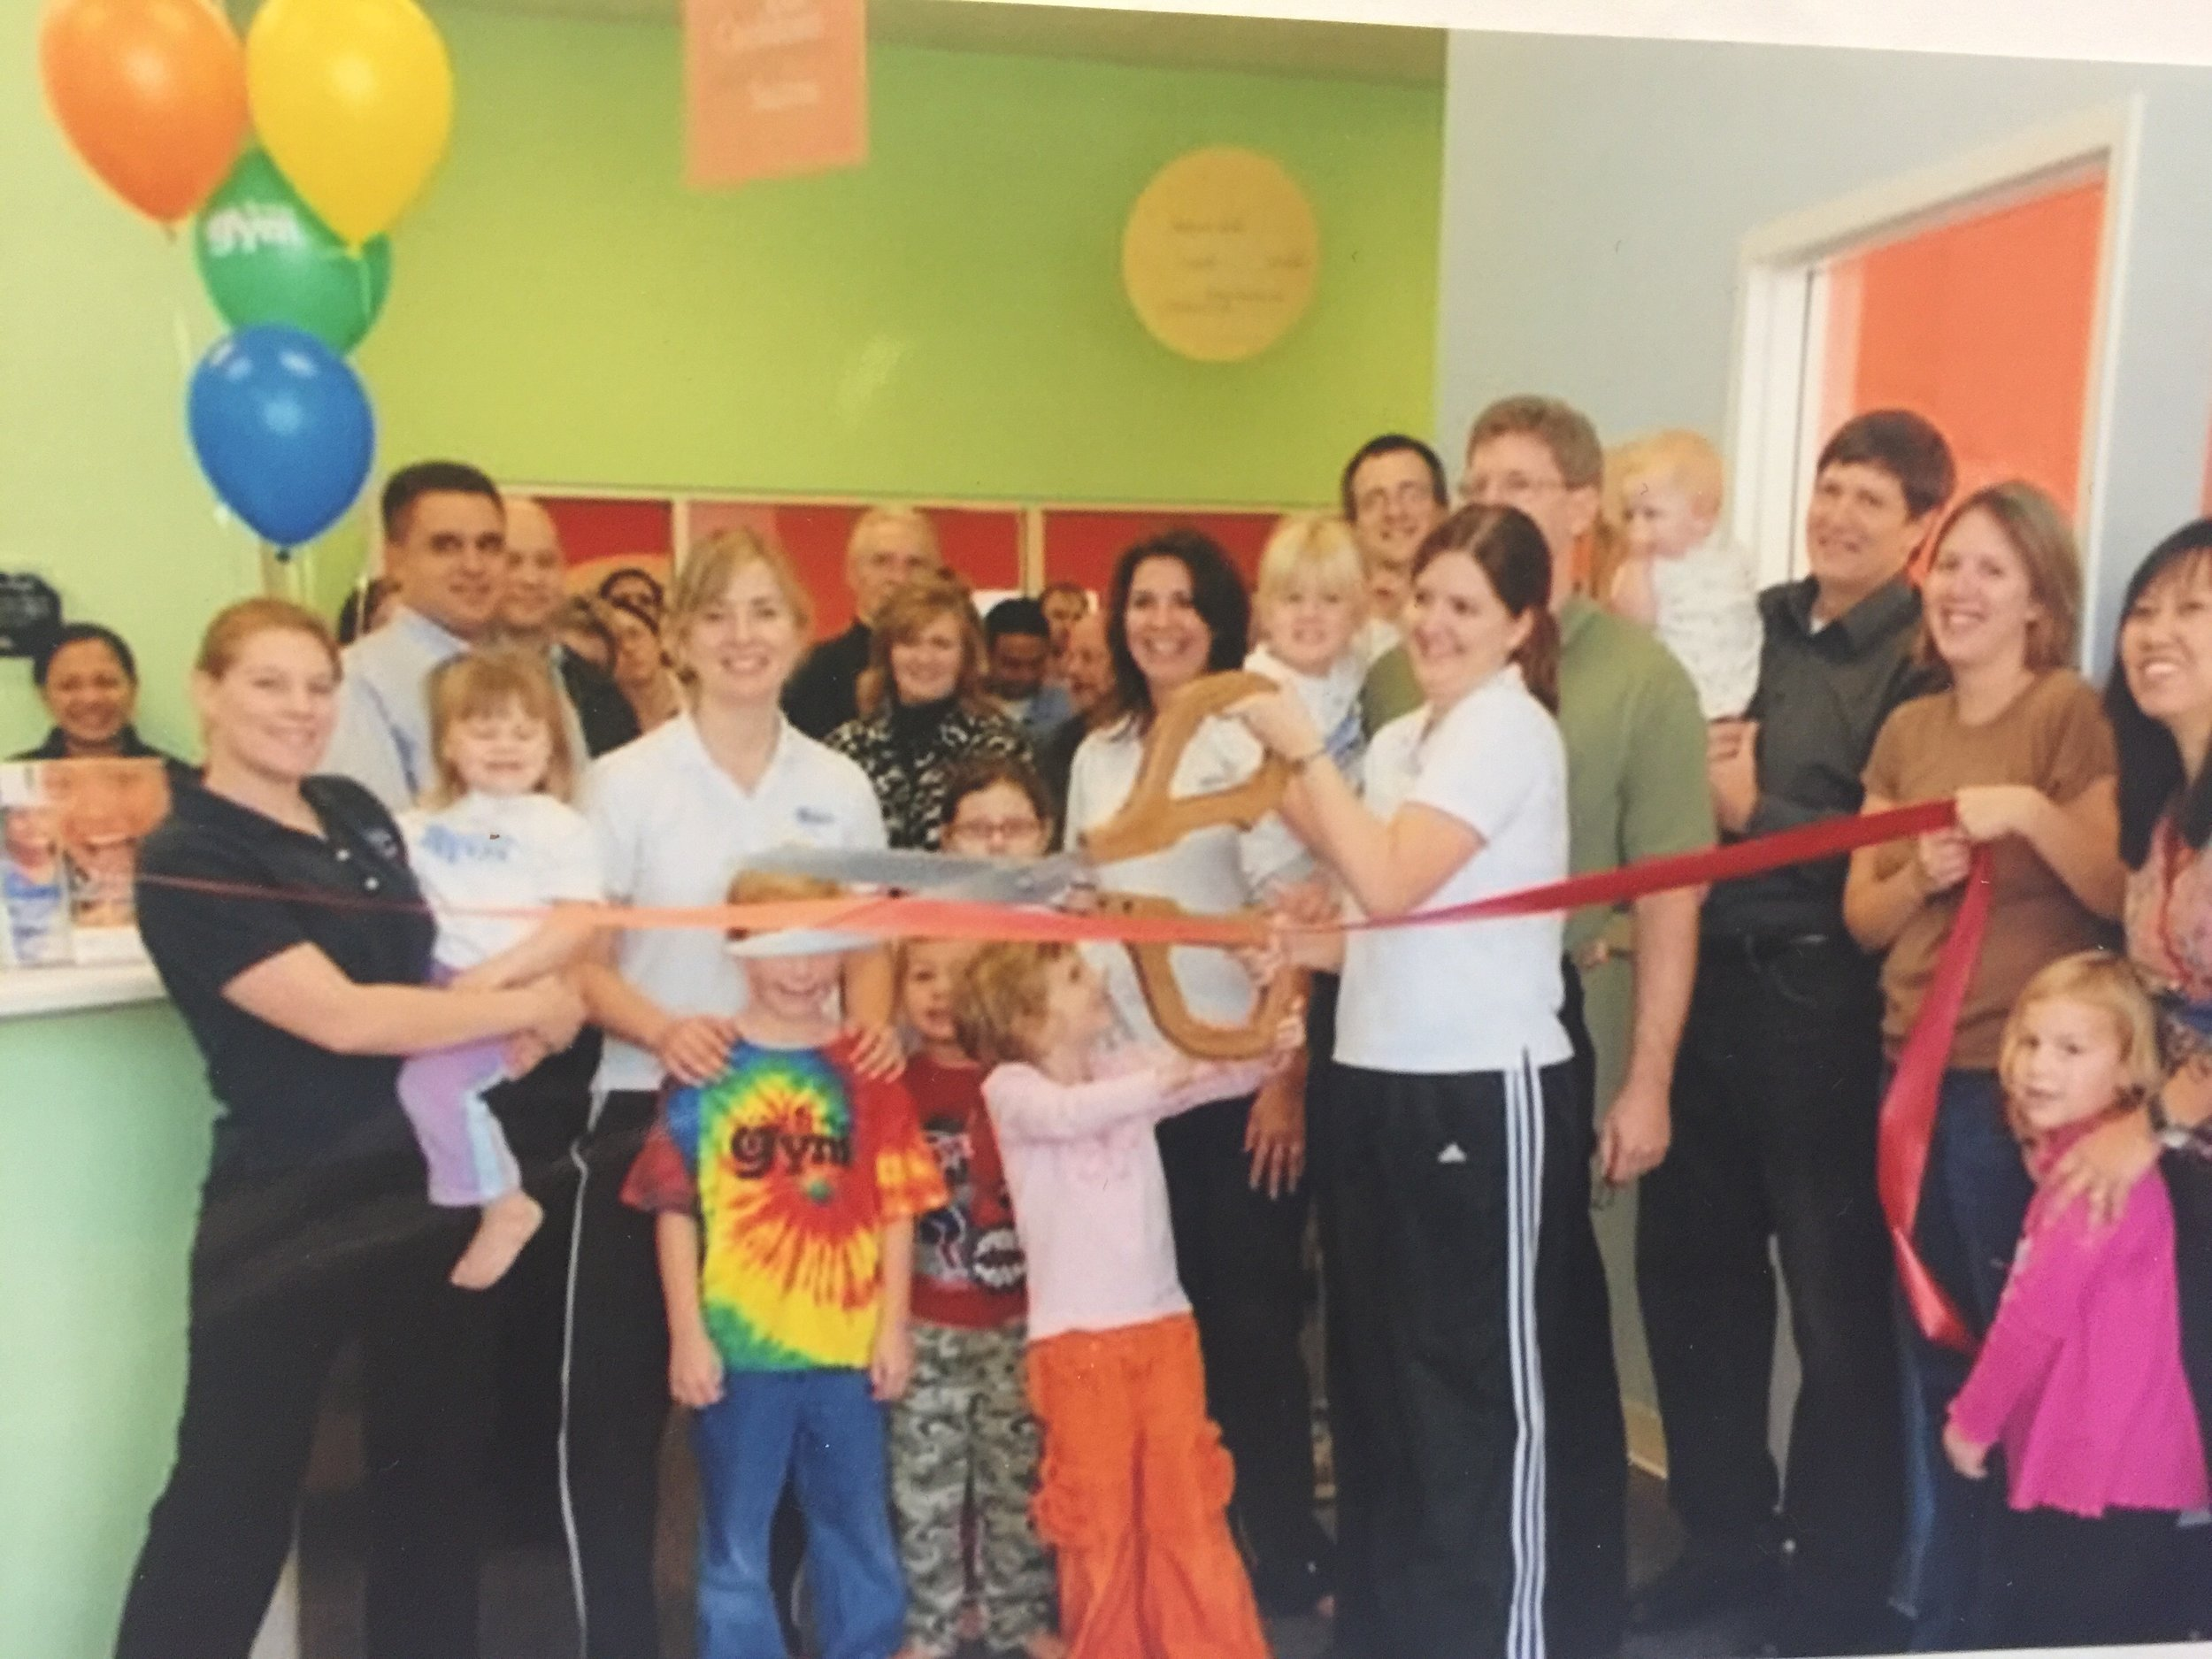 Ribbon Cutting in 2007. Notice the guy by the blue balloon. It's Corey! Then just family friend. Destined to be TLG Owner!